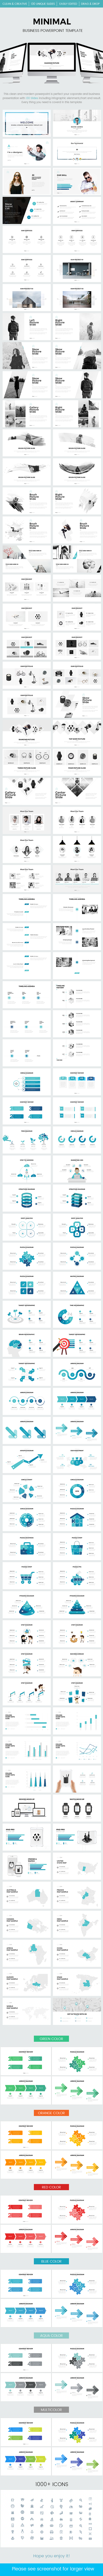 Minimal Business Powerpoint Template - PowerPoint Templates Presentation Templates